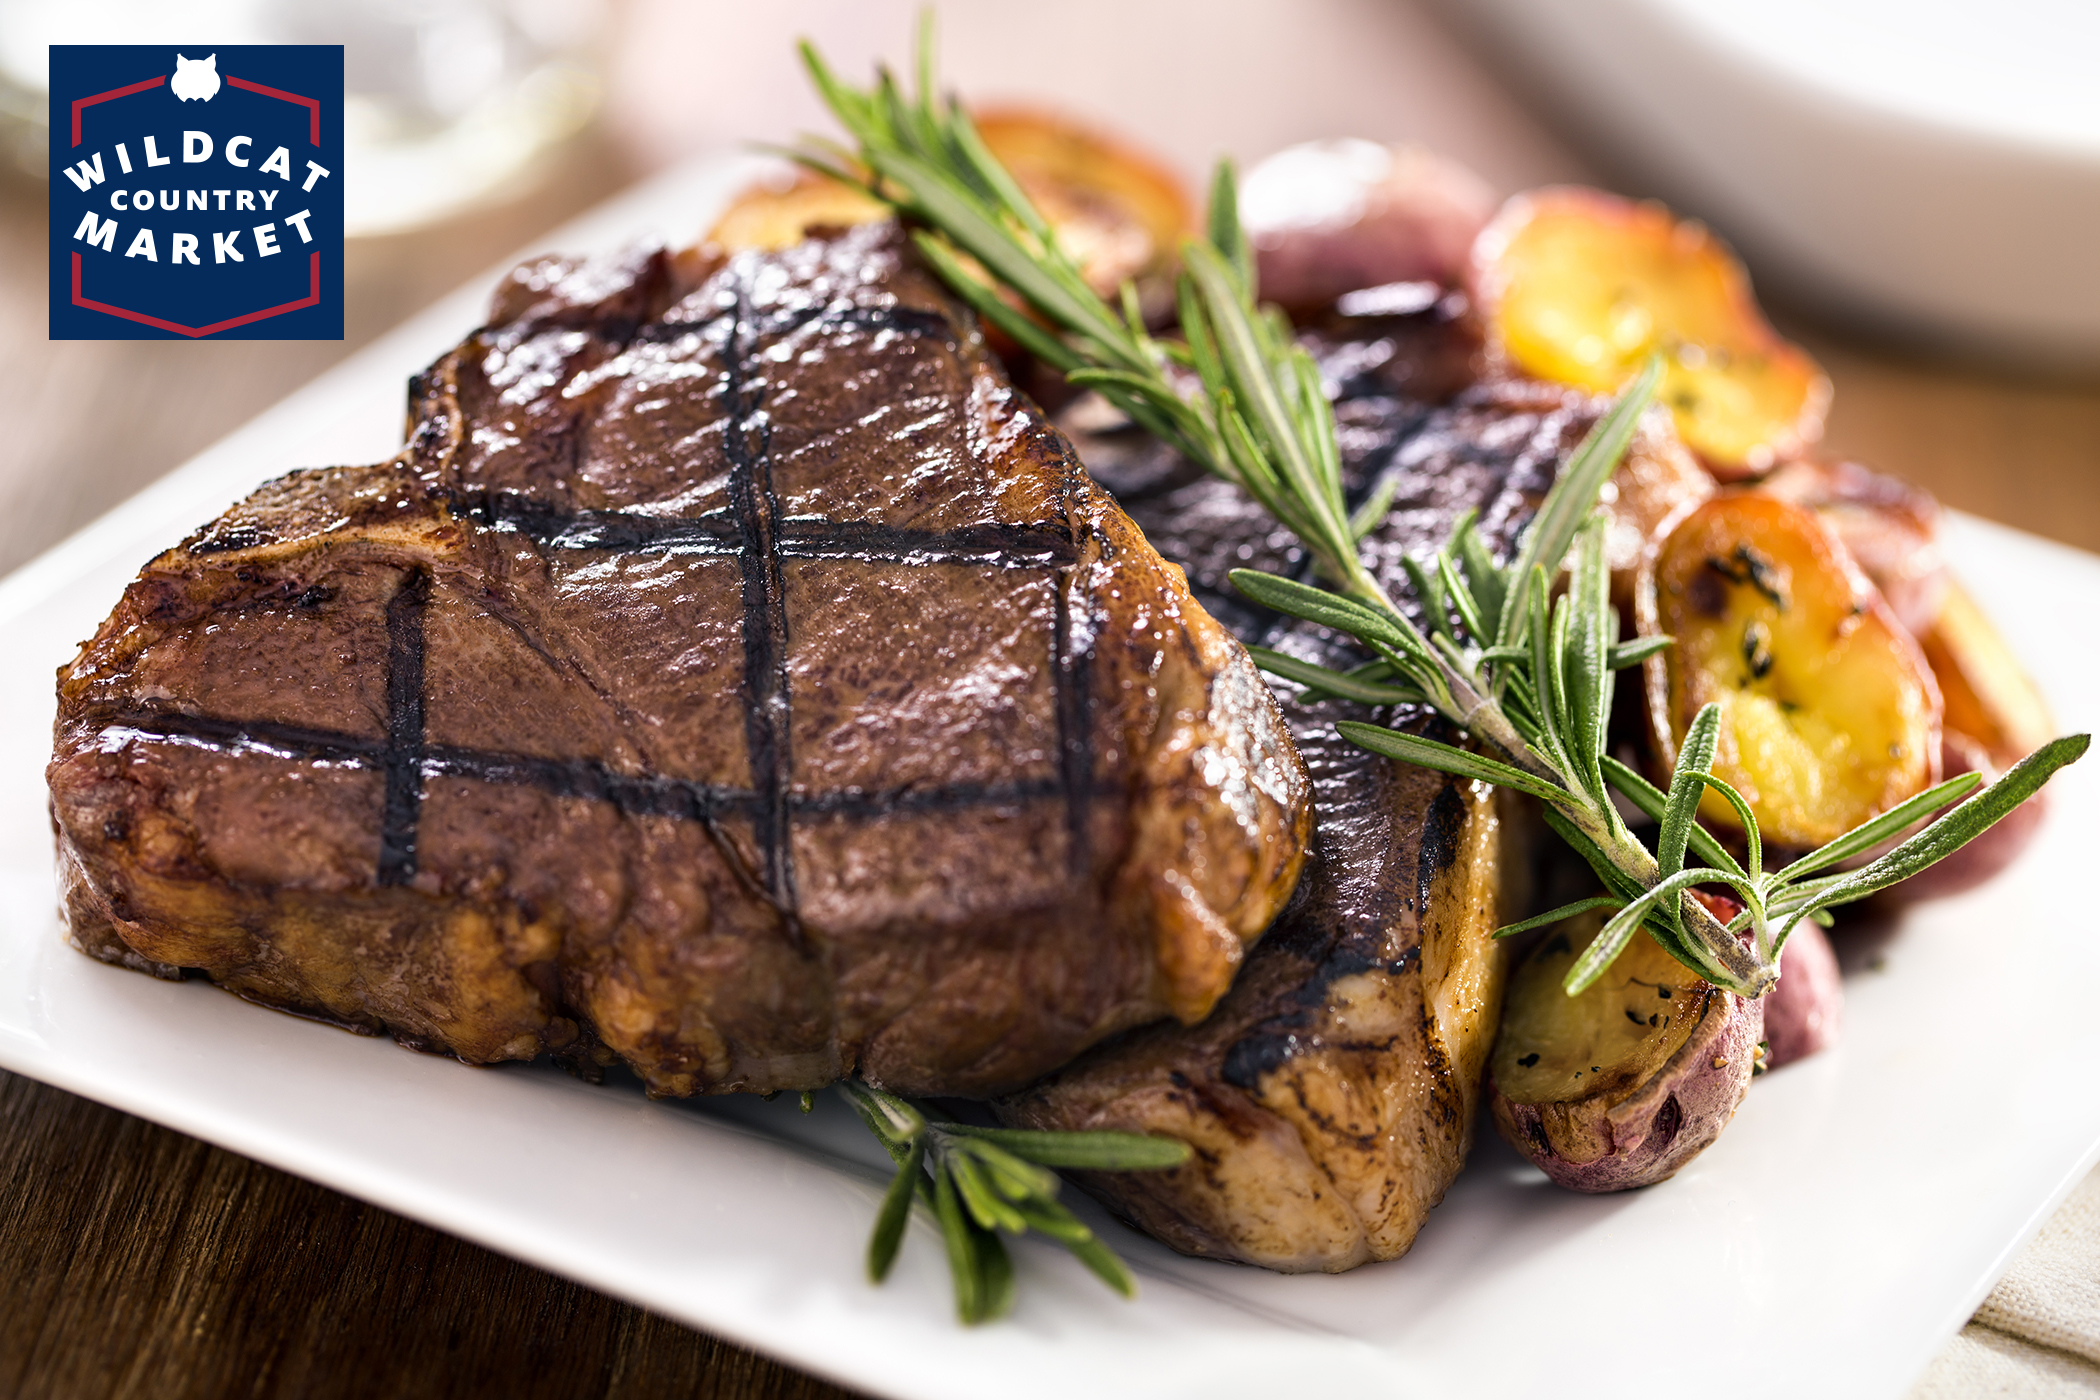 A meal of meat chops presented with fresh rosemary and roasted potatoes.